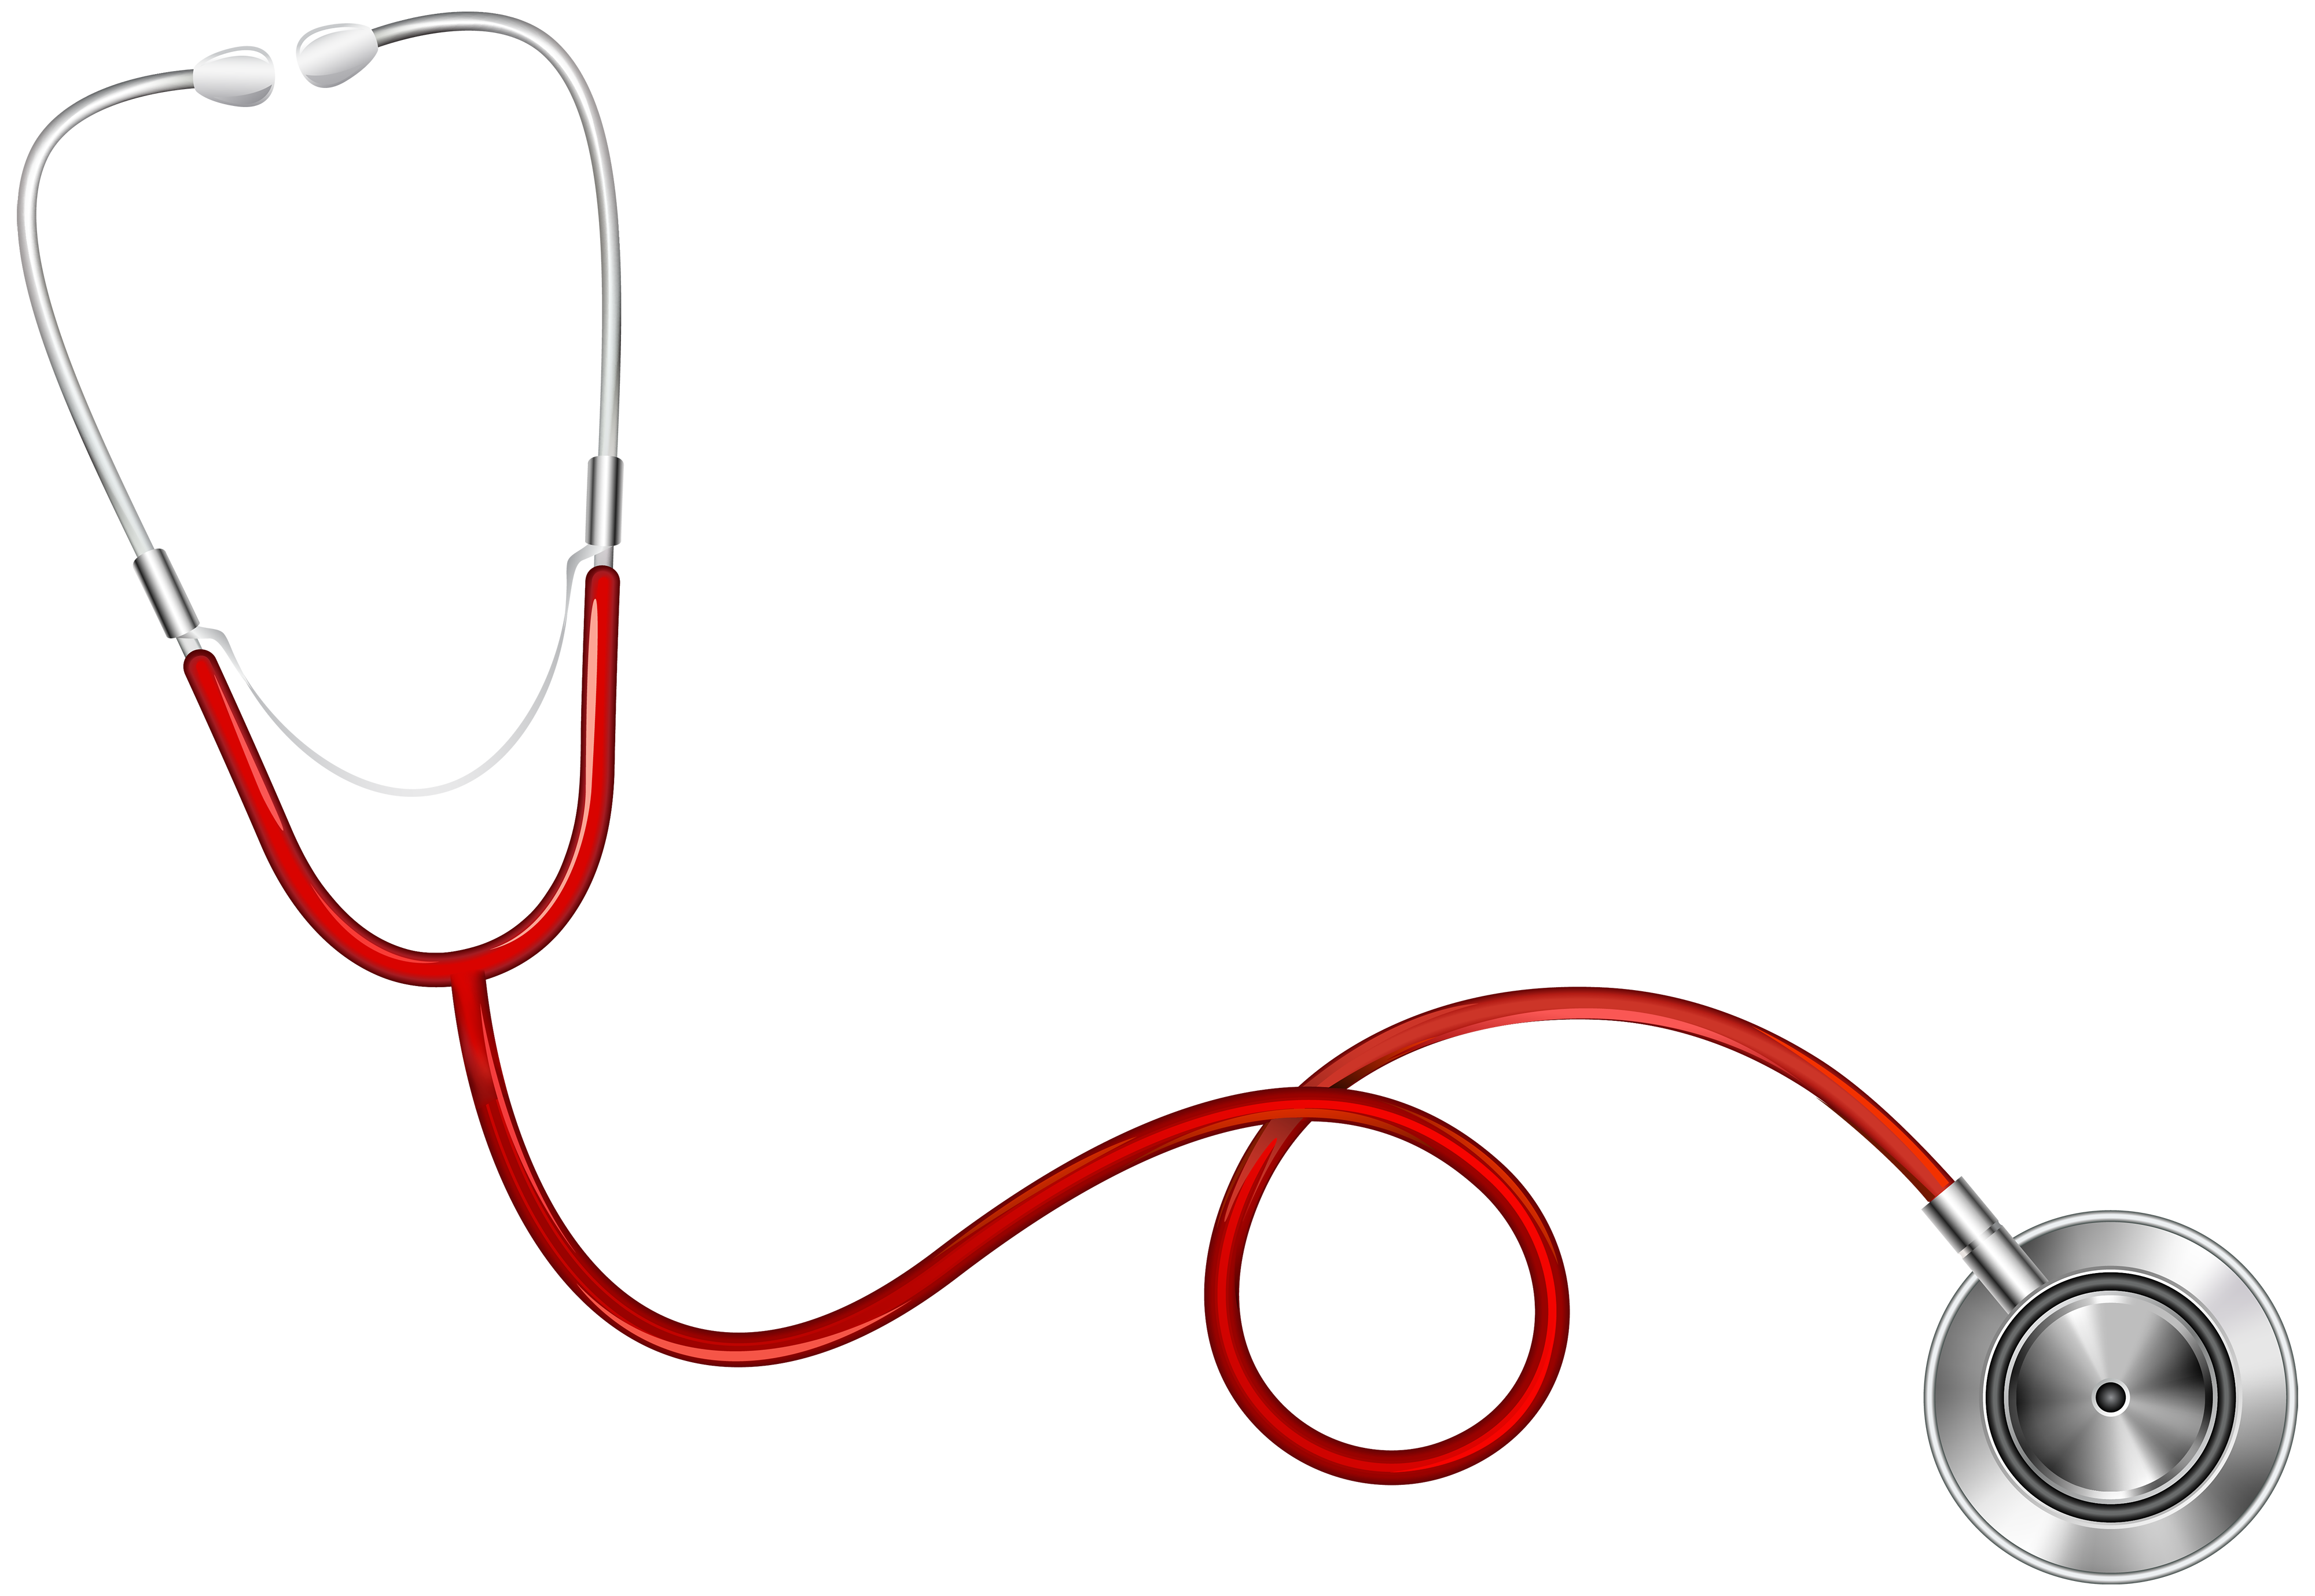 Doctors Stethoscope PNG Clipart.